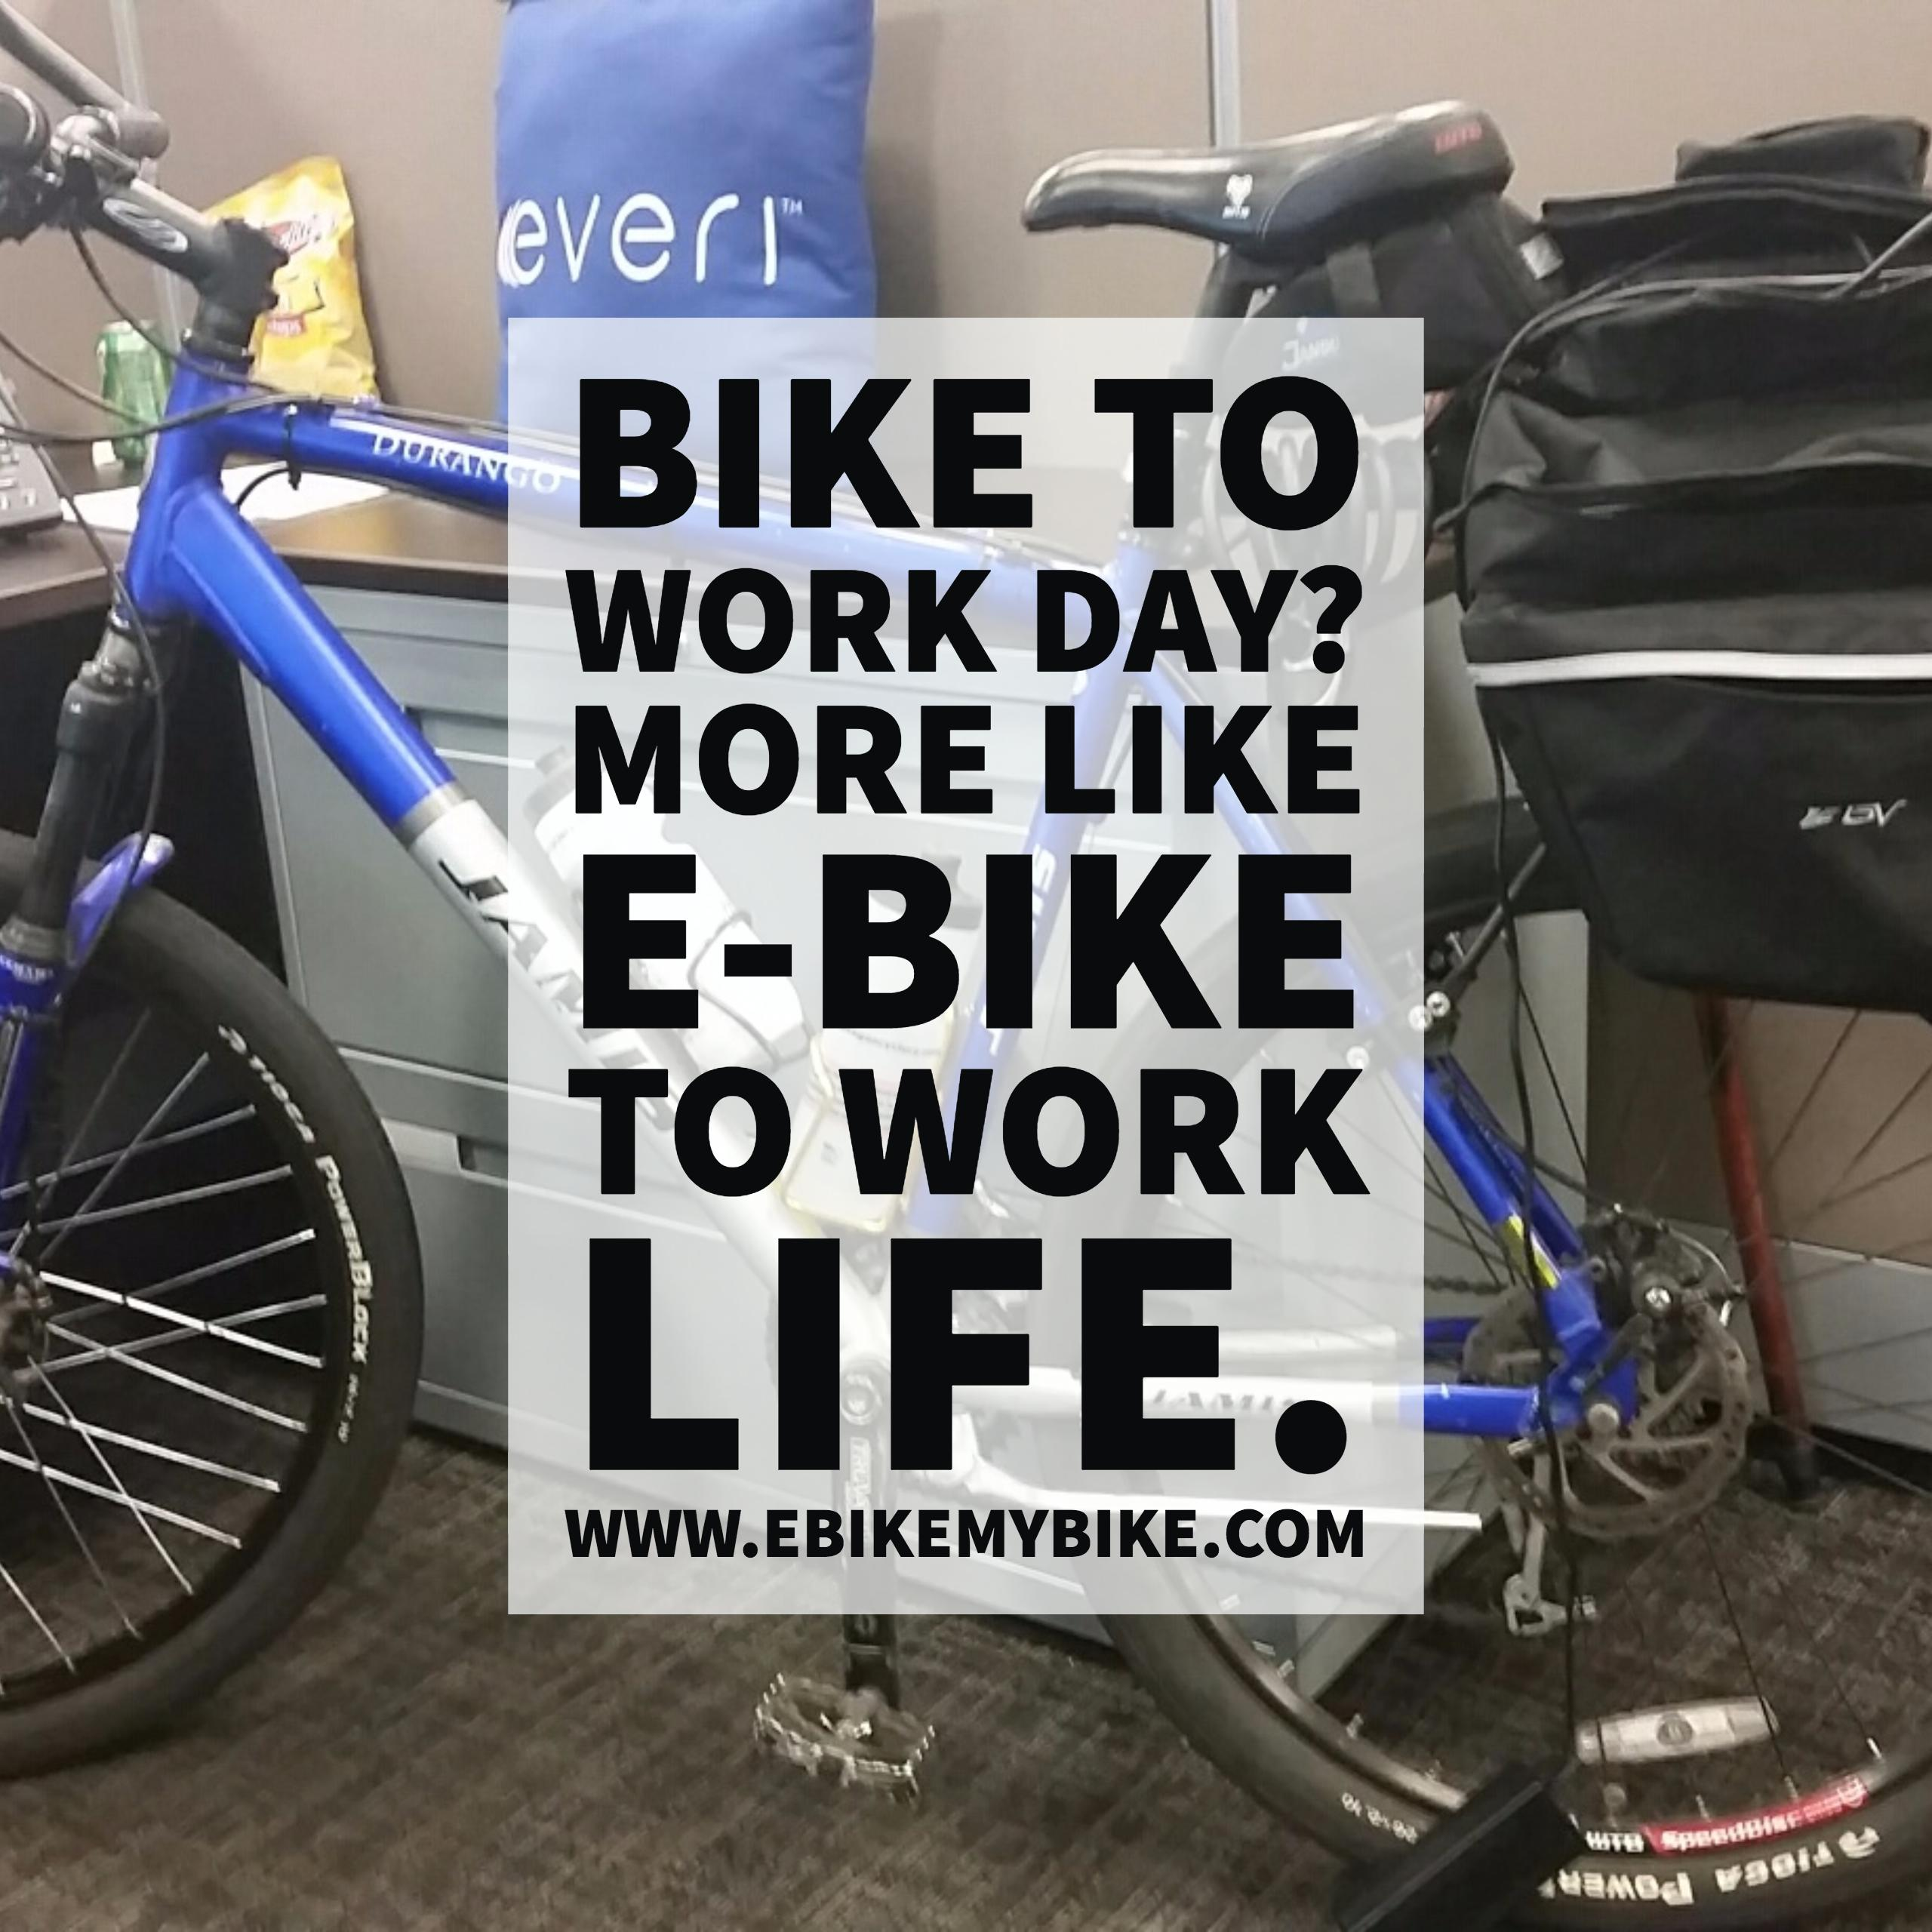 commute to work with an electric bicycle